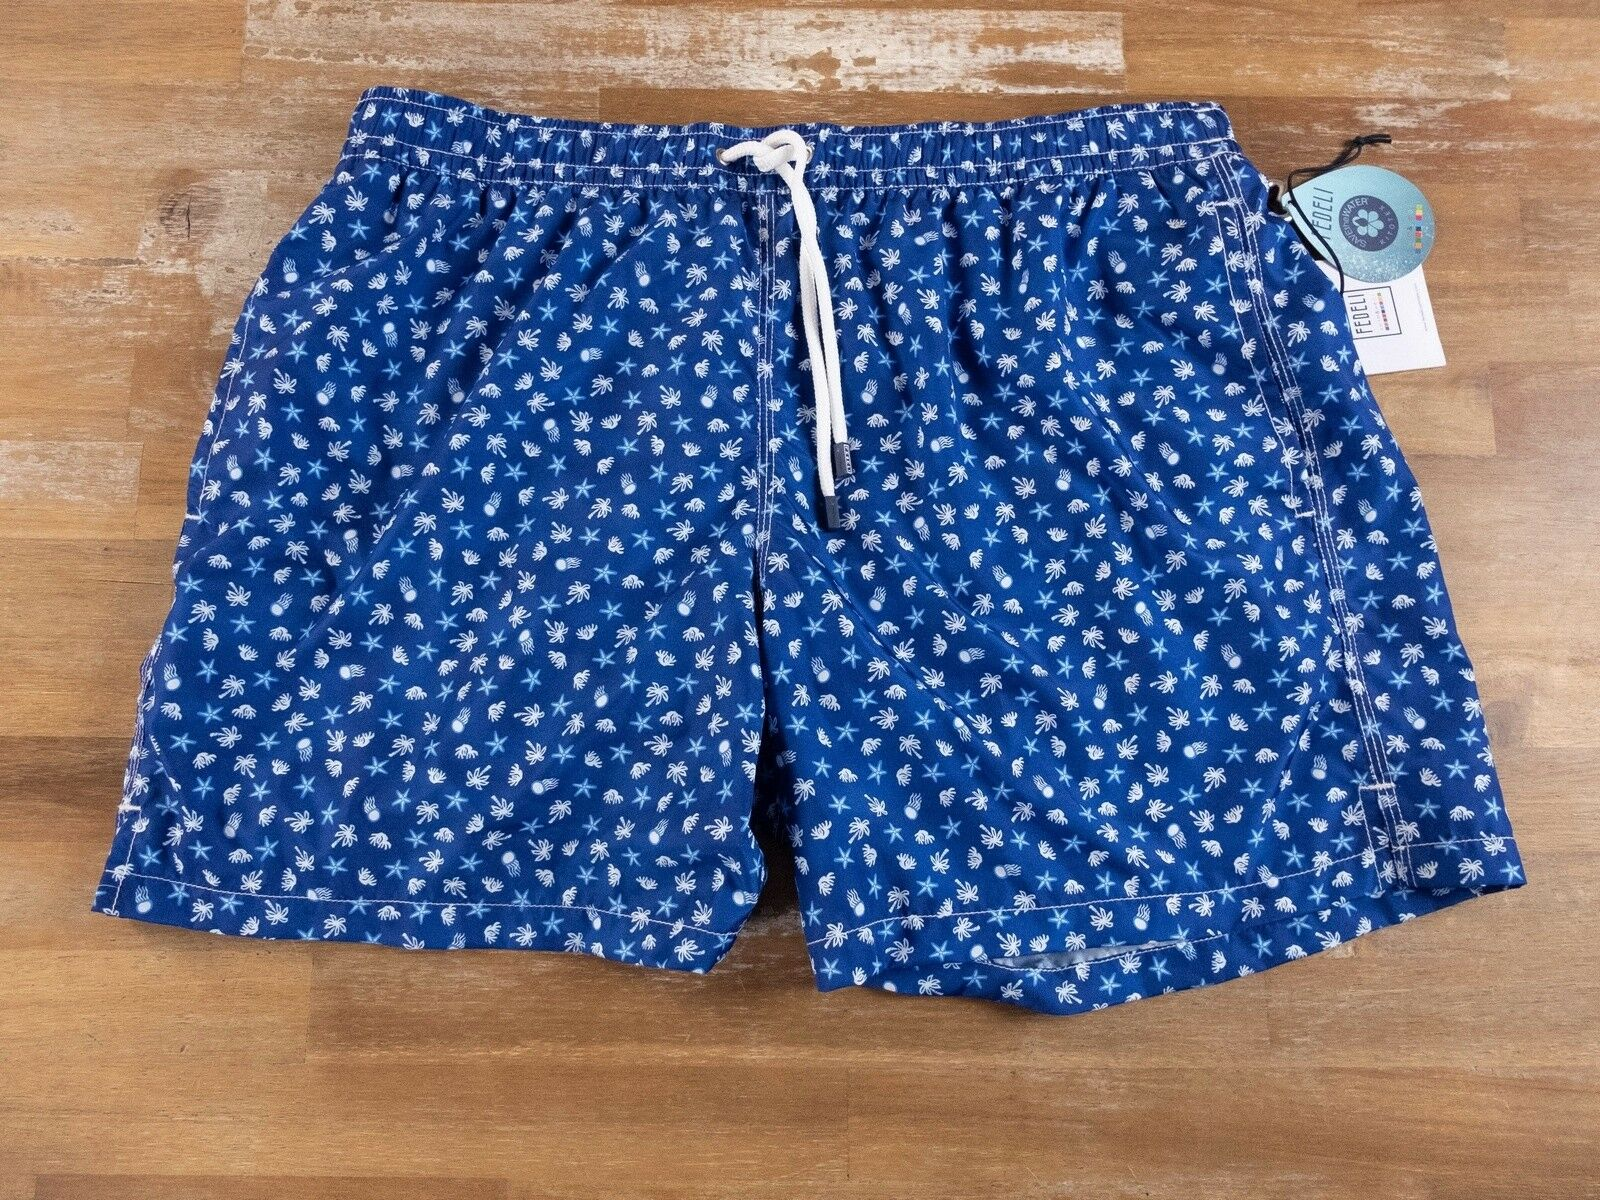 FEDELI bluee swim shorts authentic - Size XL - NWT